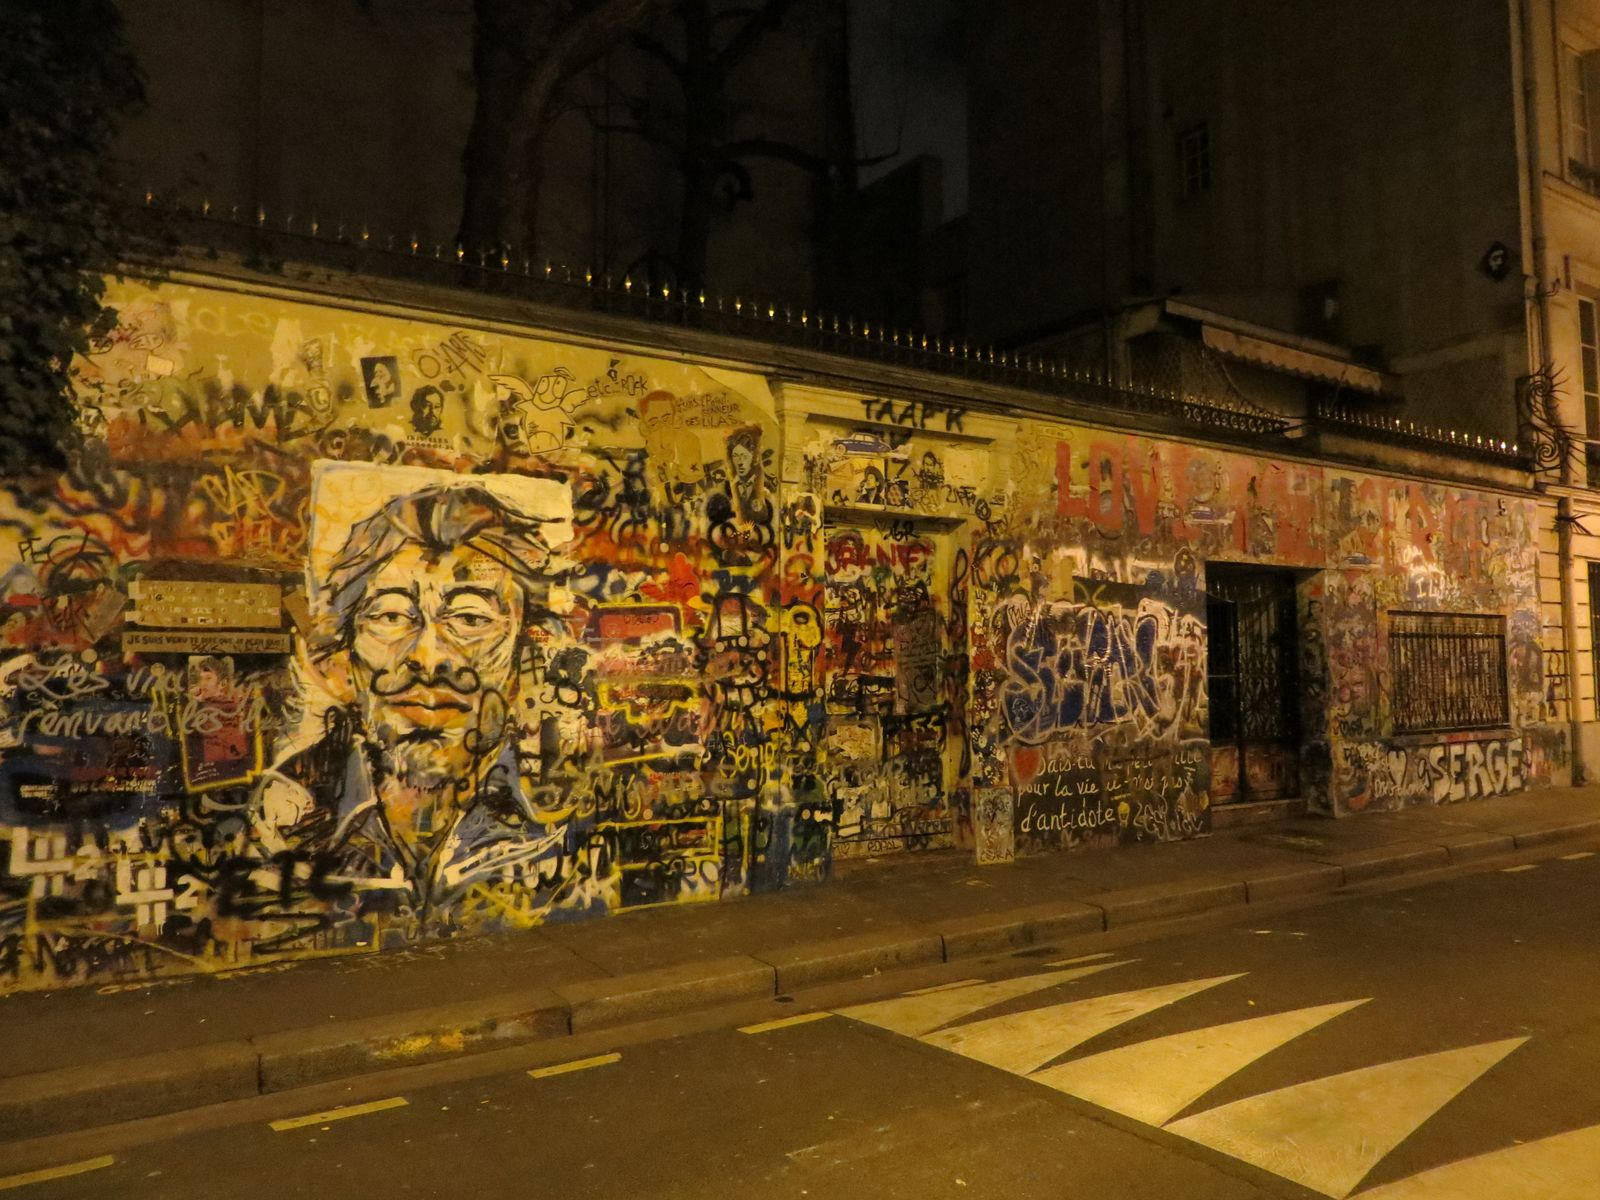 Maison de Gainsbourg by night